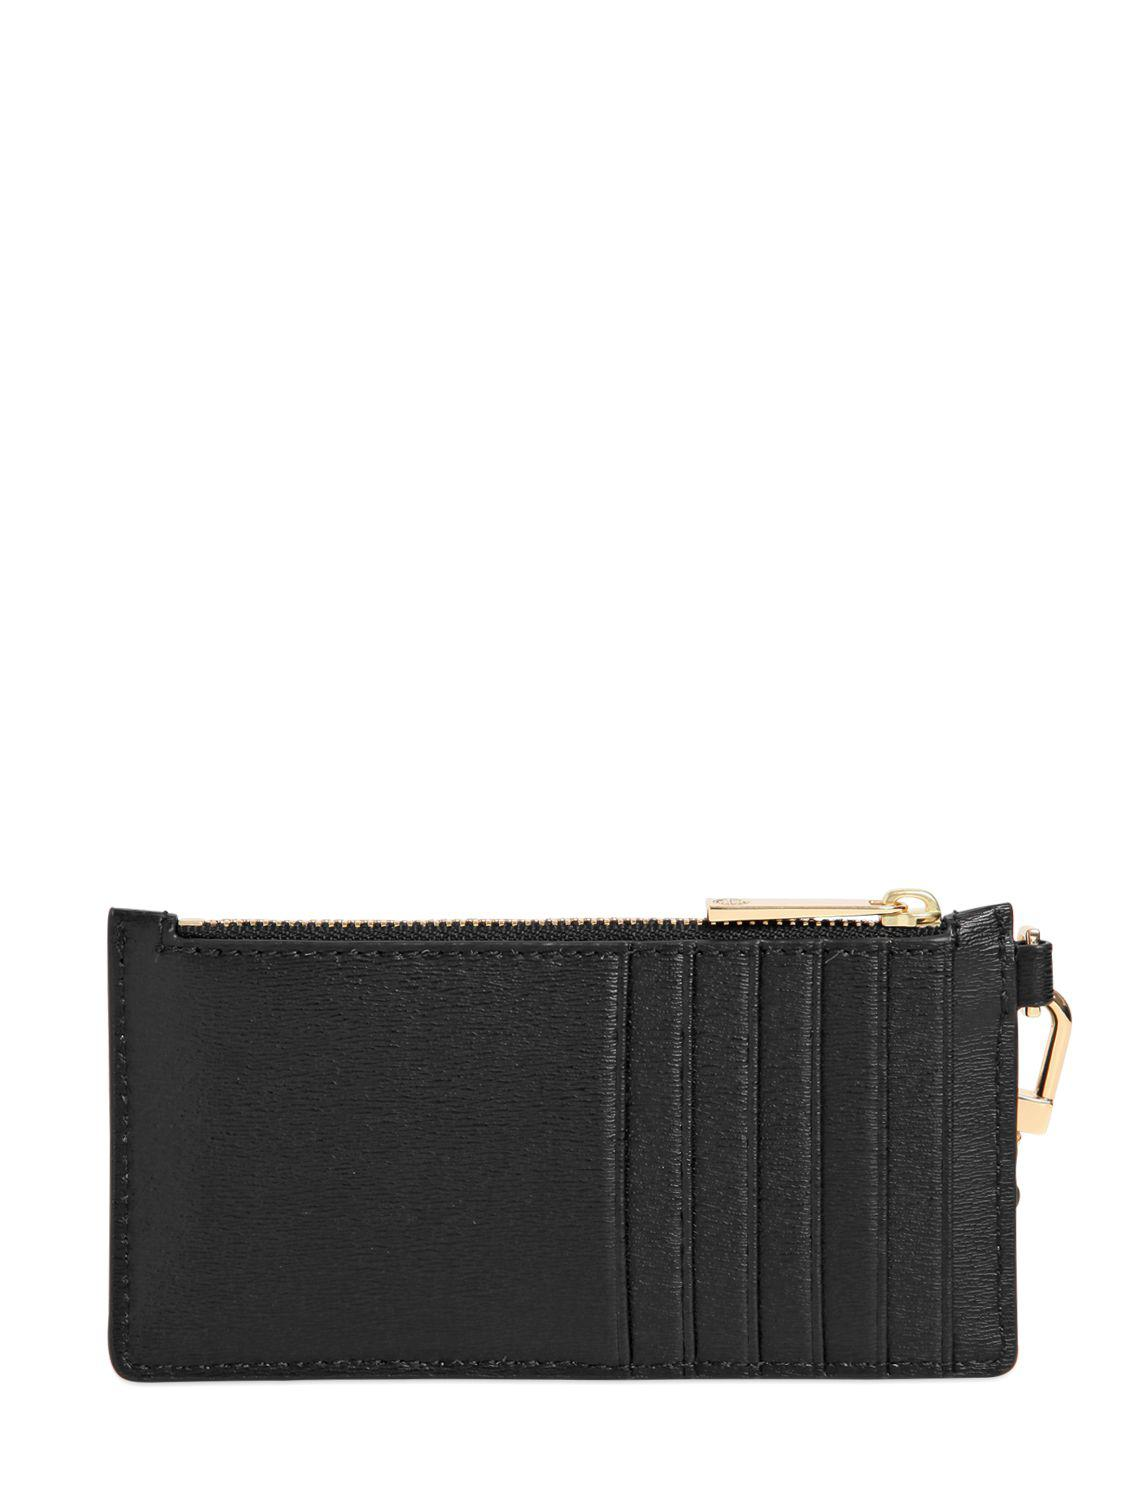 Lyst - Tory burch Parker Leather Zip Card Holder in Black